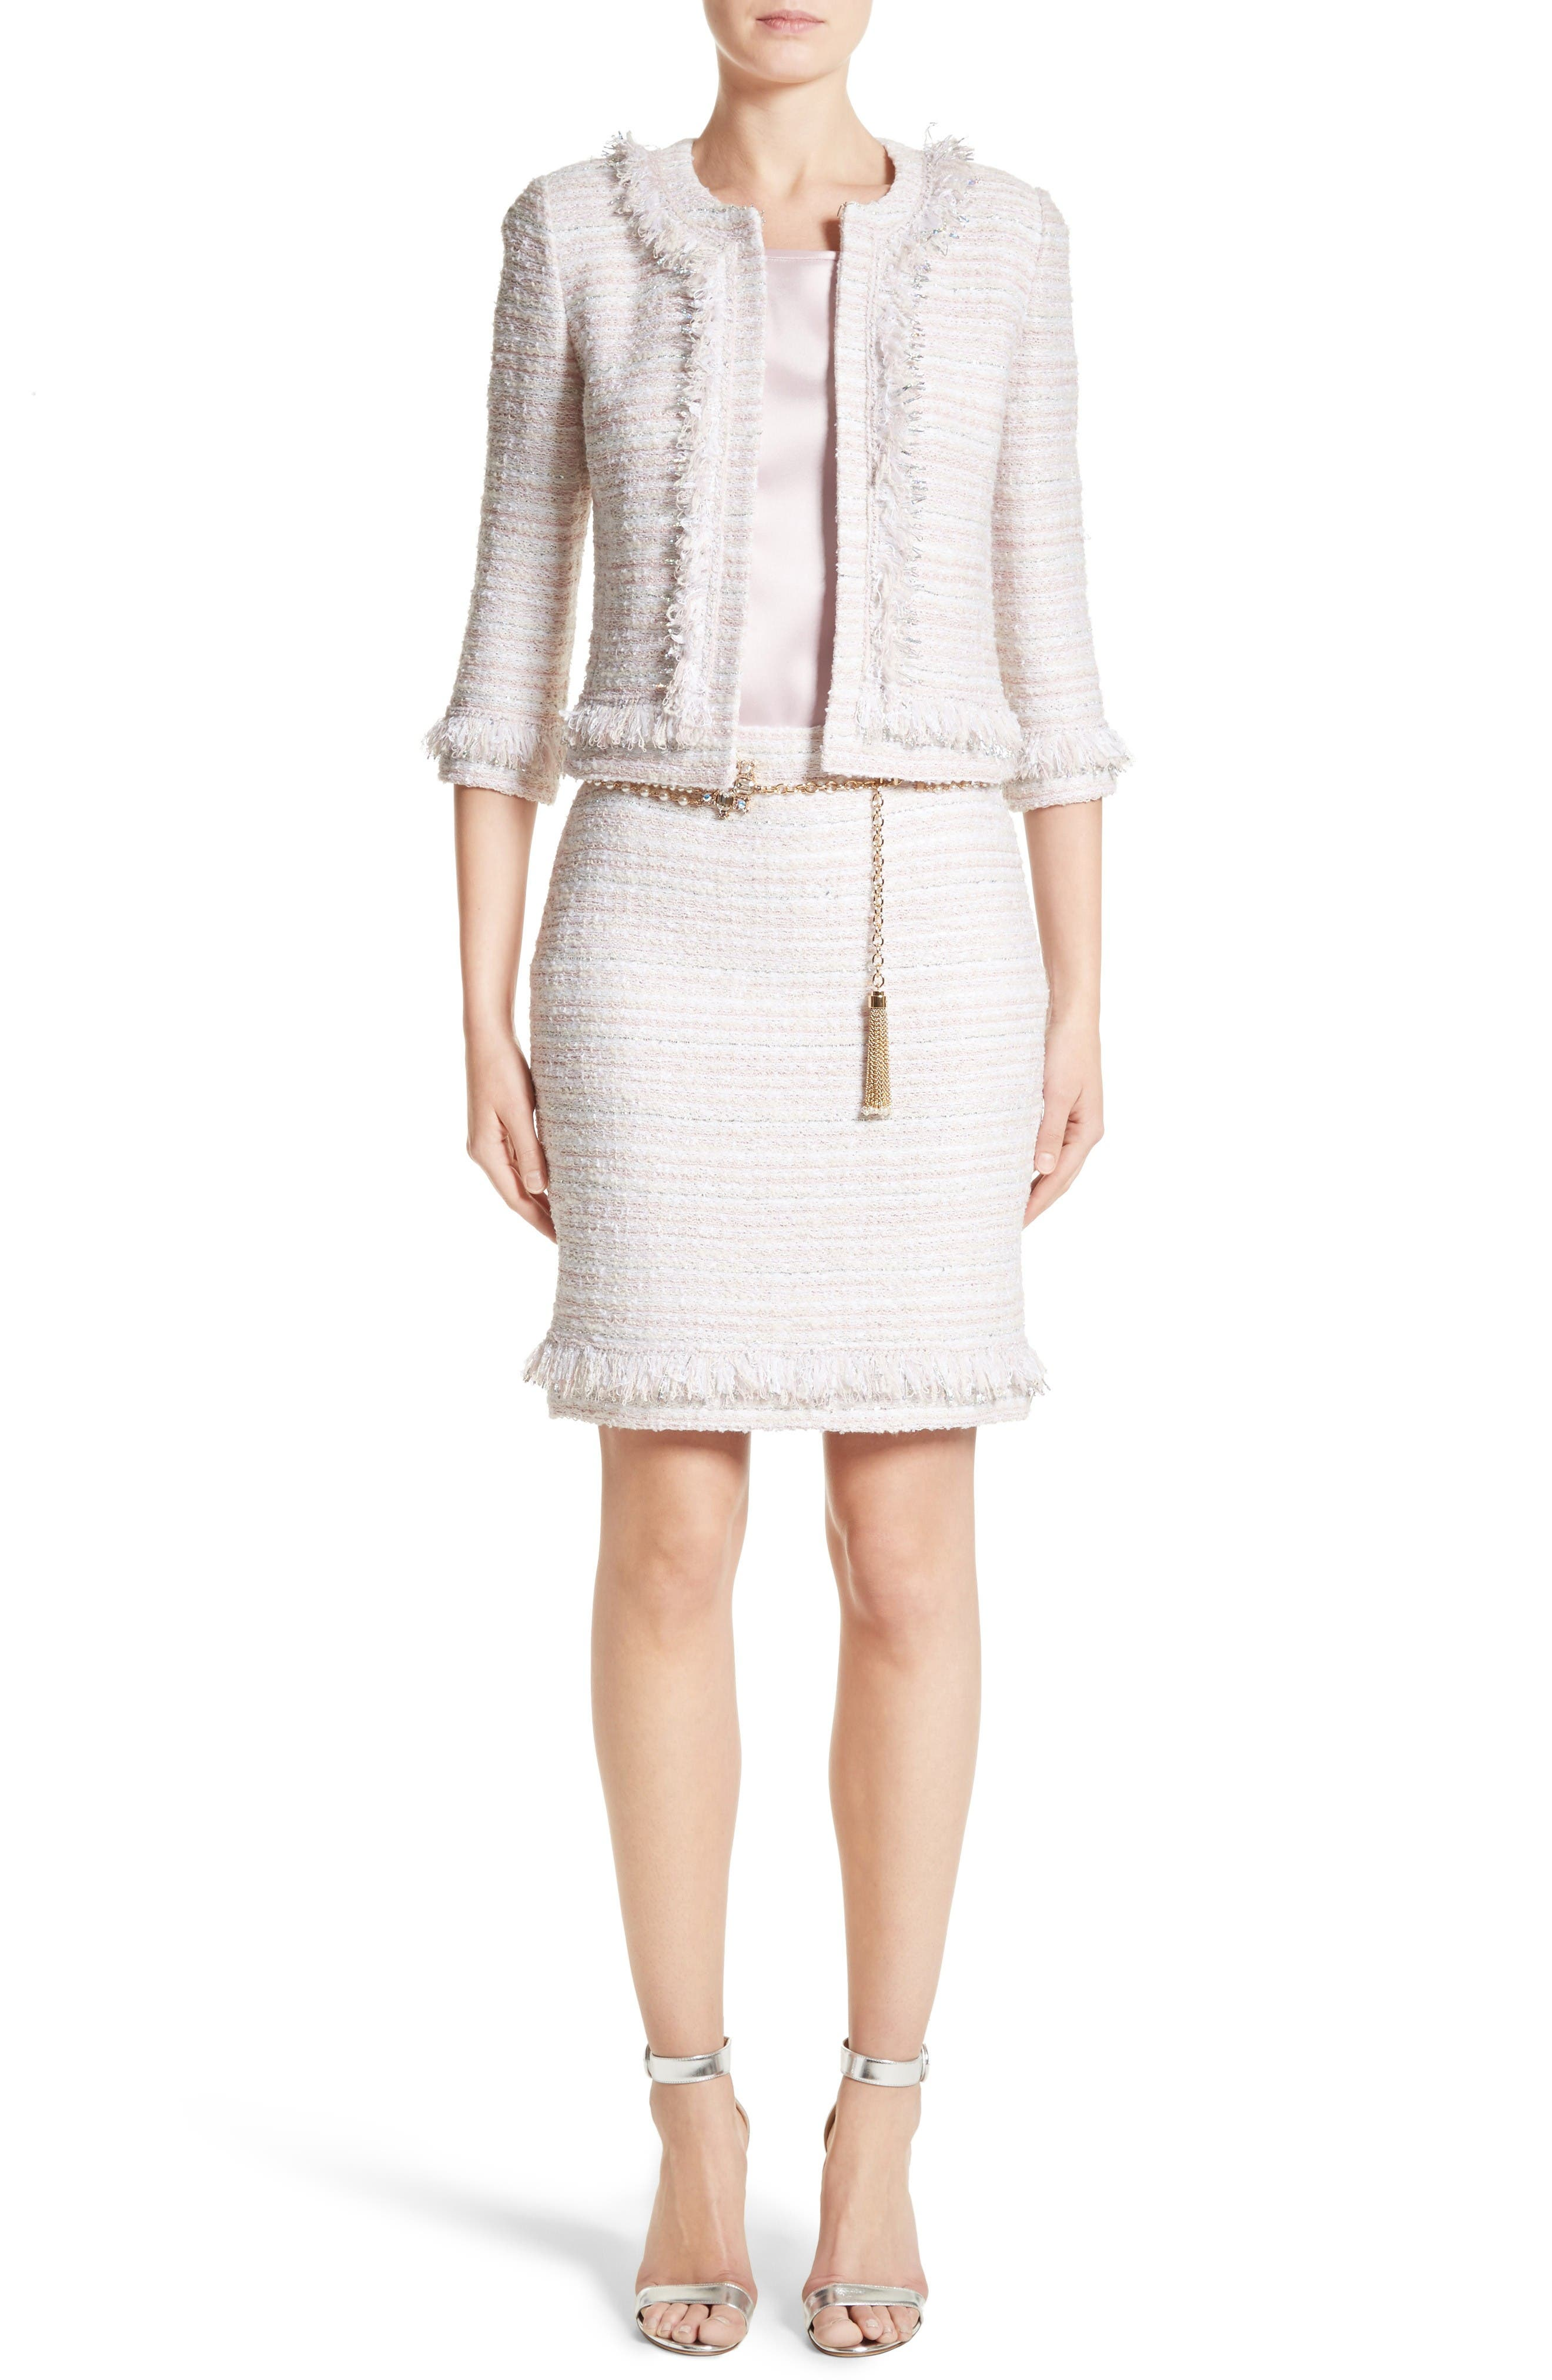 St. John Collection Jacket, Shell & Skirt Outfit with Accessories